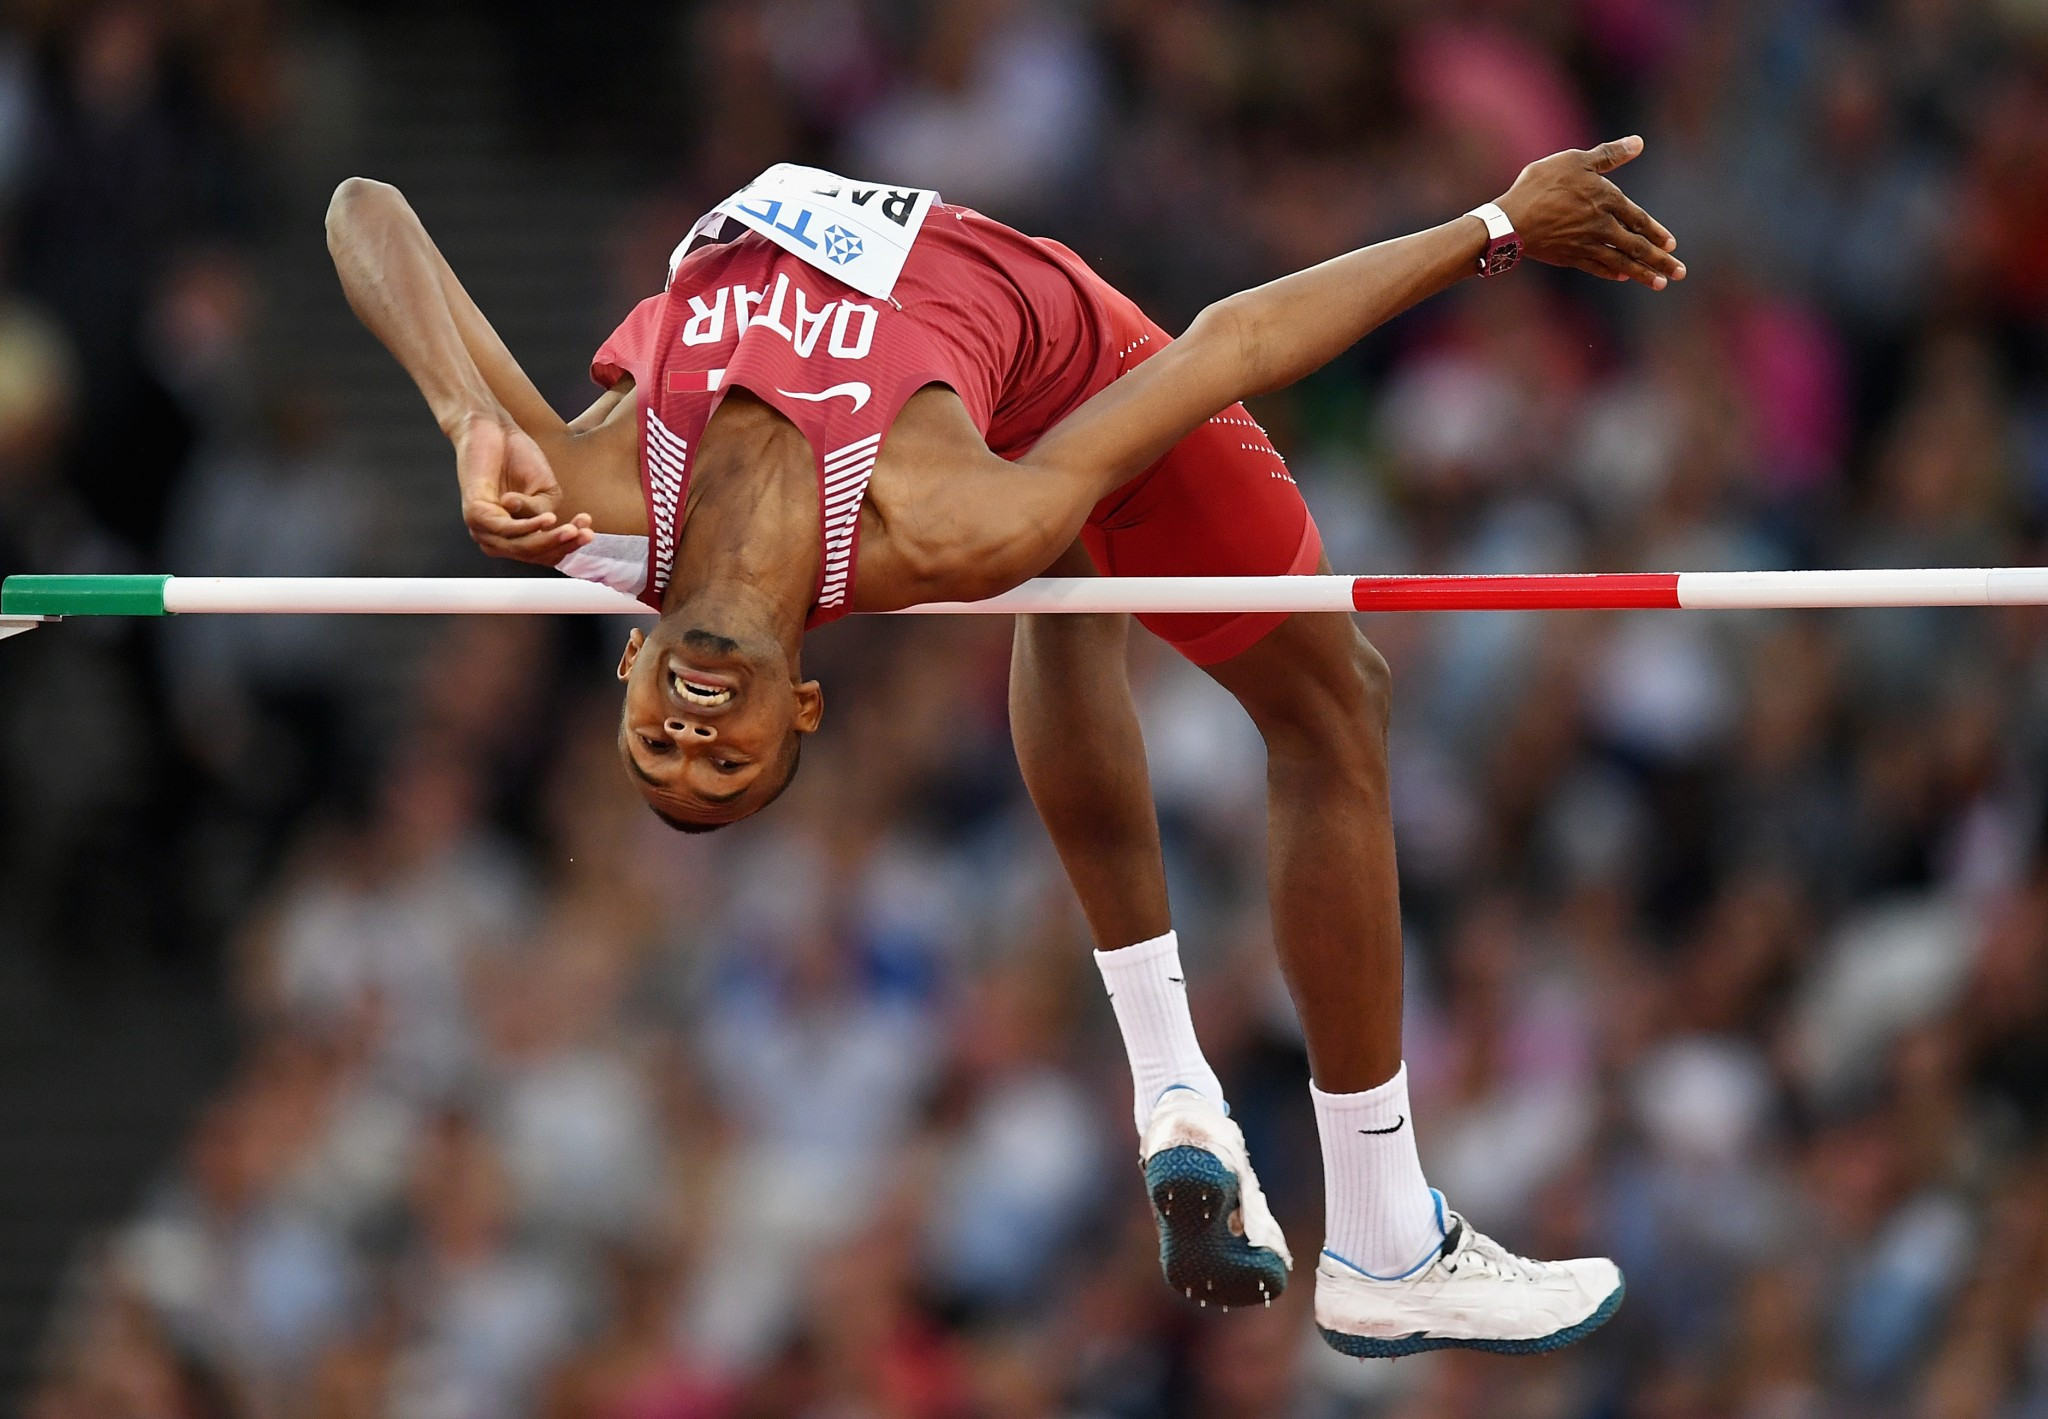 Mutaz Essa Barshim claimed Qatar's first World Championships on the final day of competition ©Getty Images